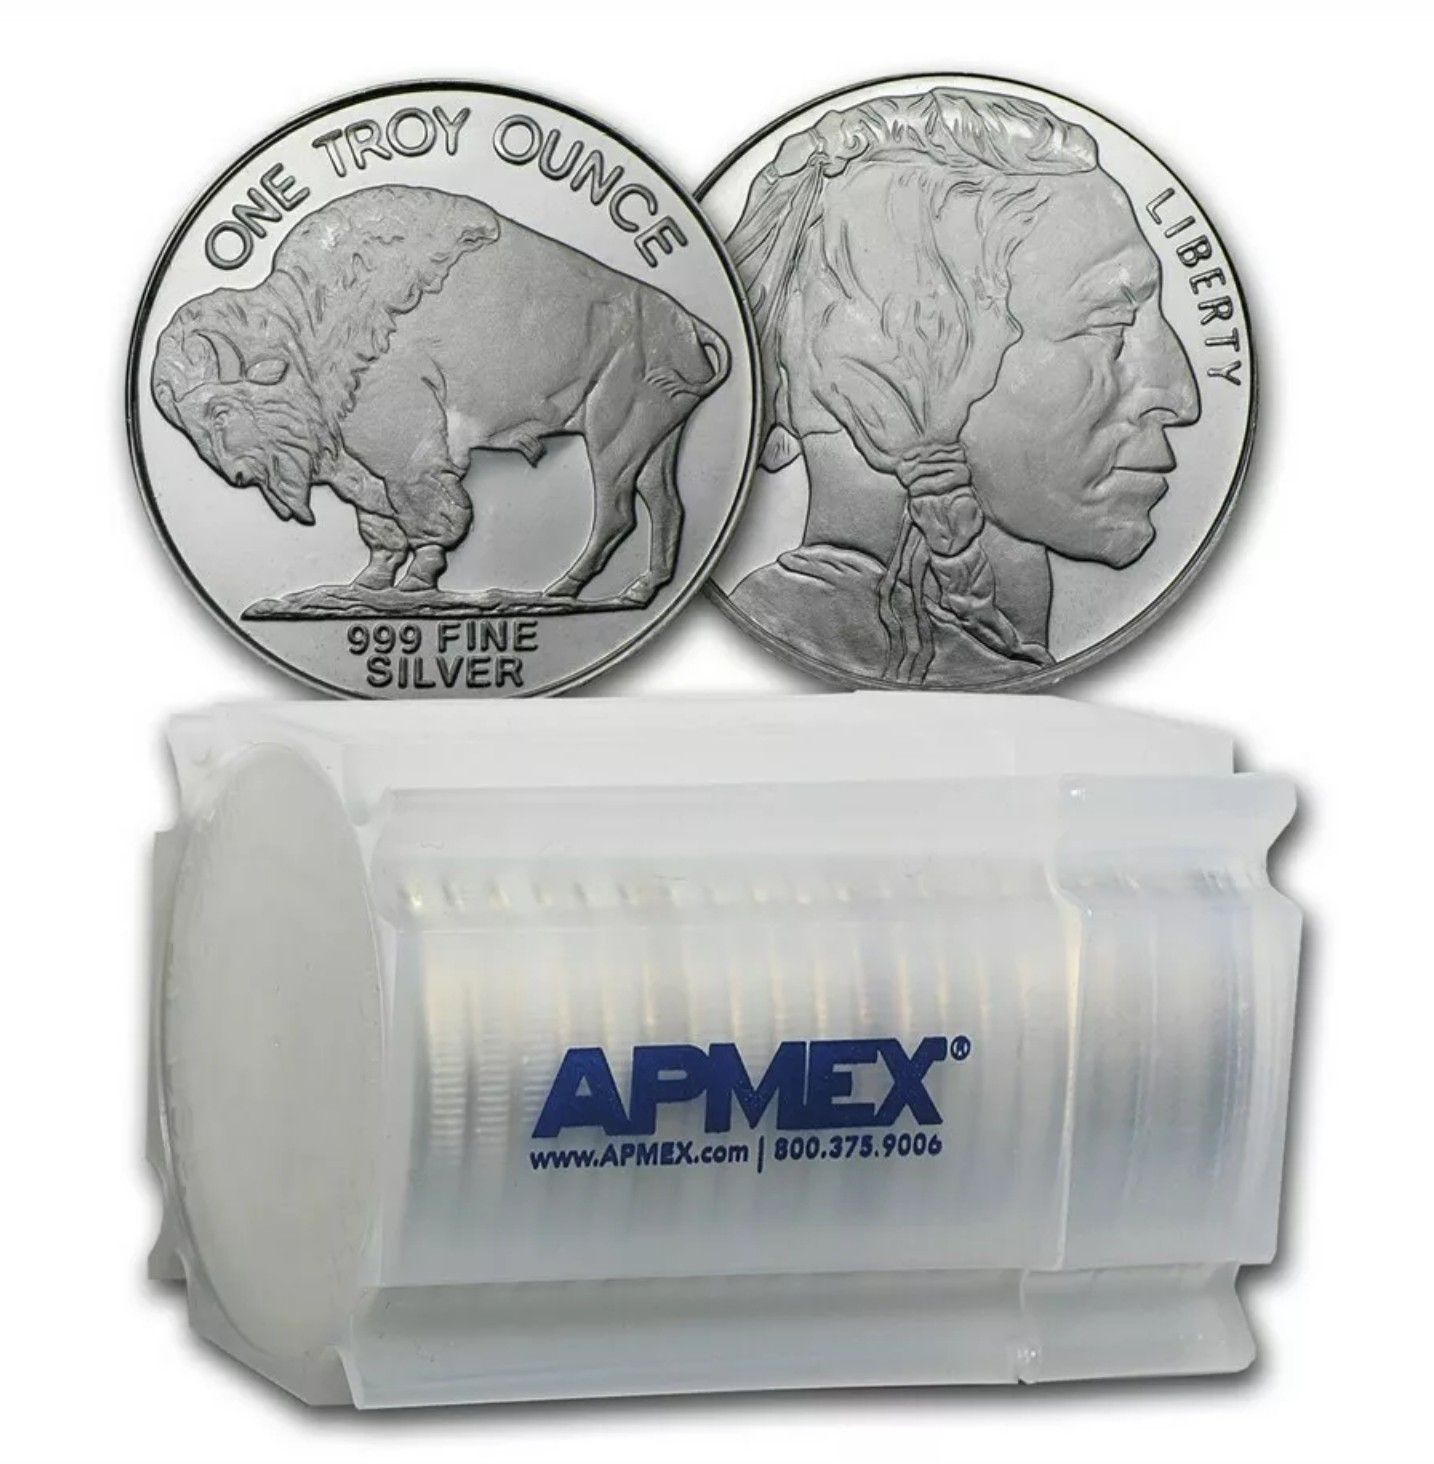 Details About 1 Oz Silver Round Buffalo Lot Roll Tube Of 20 Sku 74759 Silver Bullion Apmex Silver Rounds